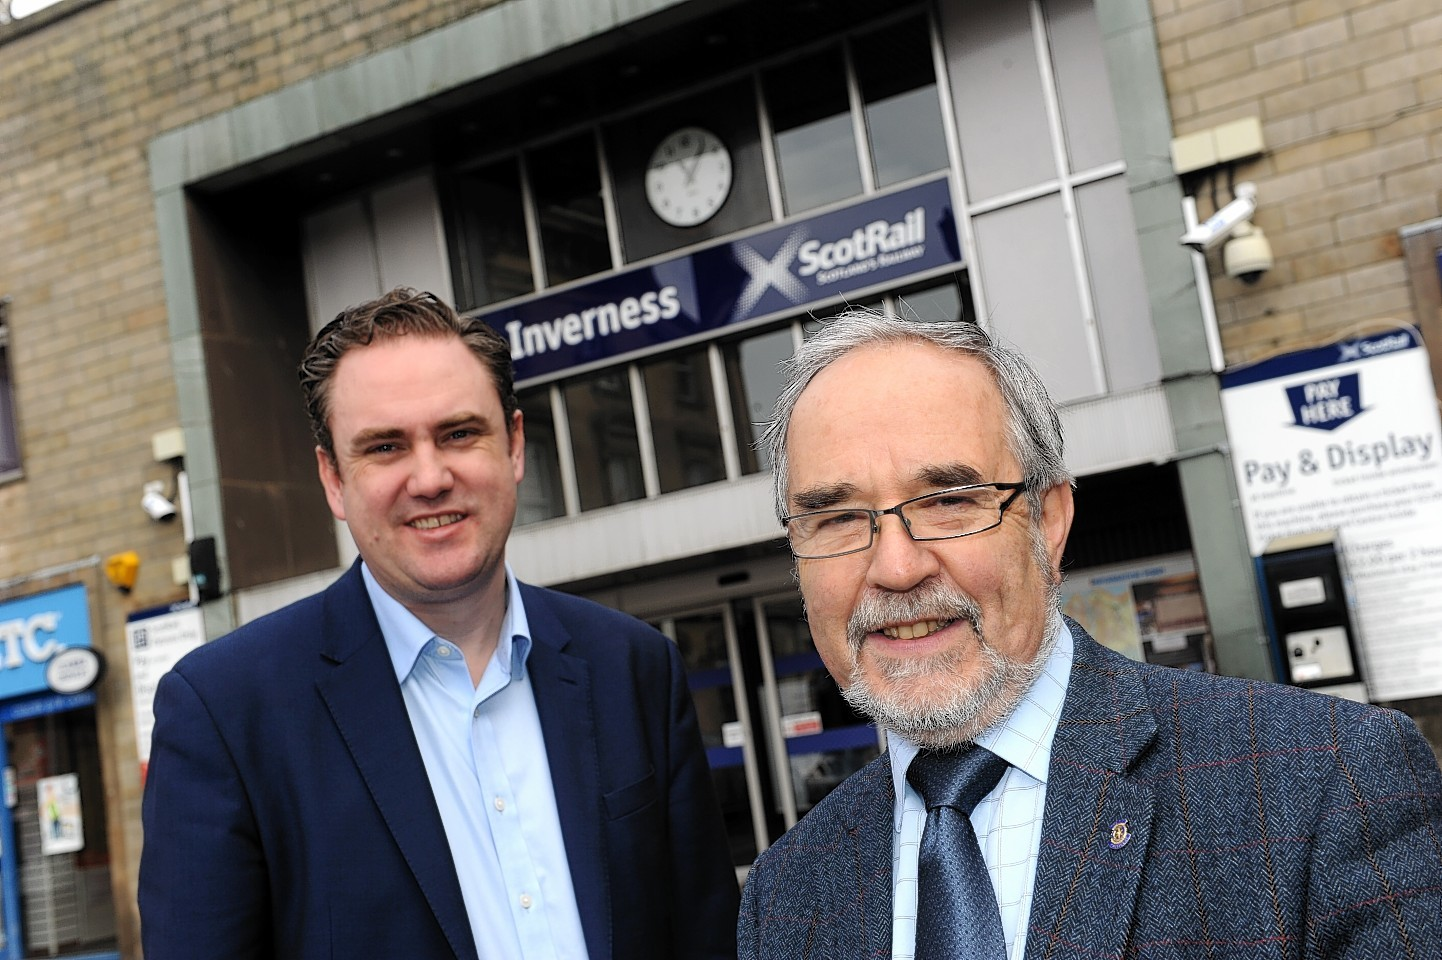 Mike Kean, Abellio, left, and Cllr. Thomas Prag at Inverness train station